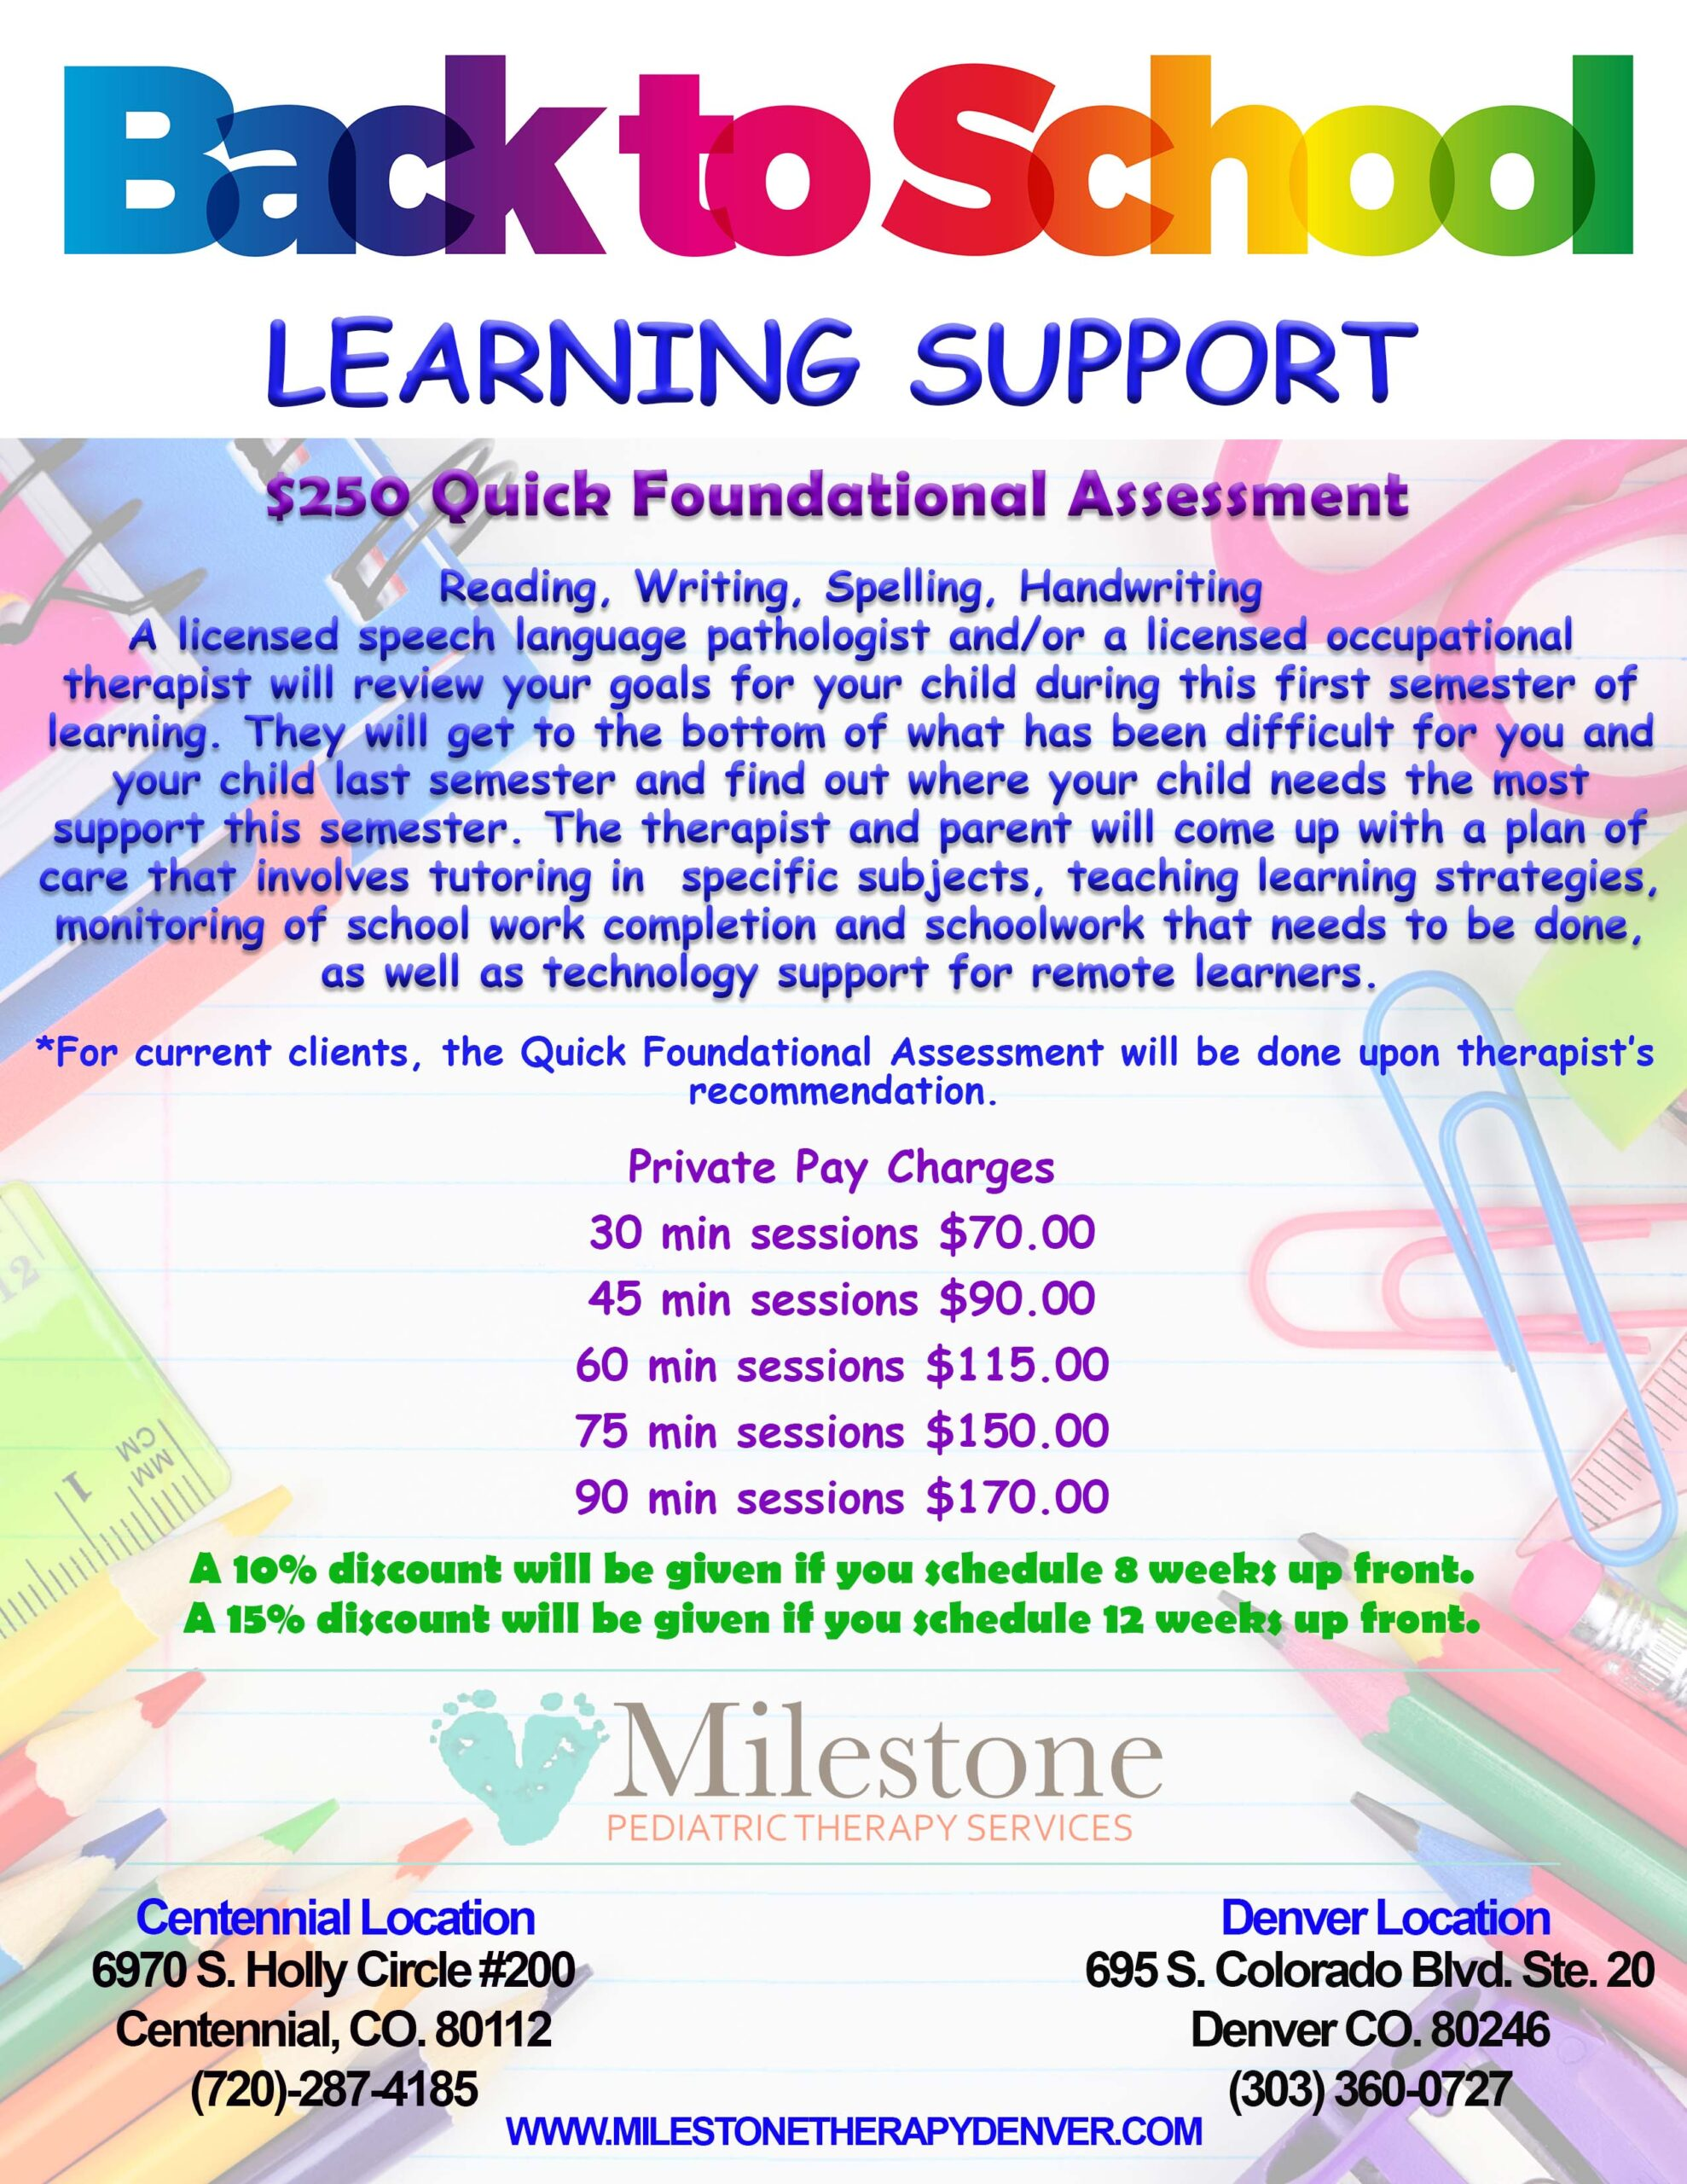 Back to School Learning Support